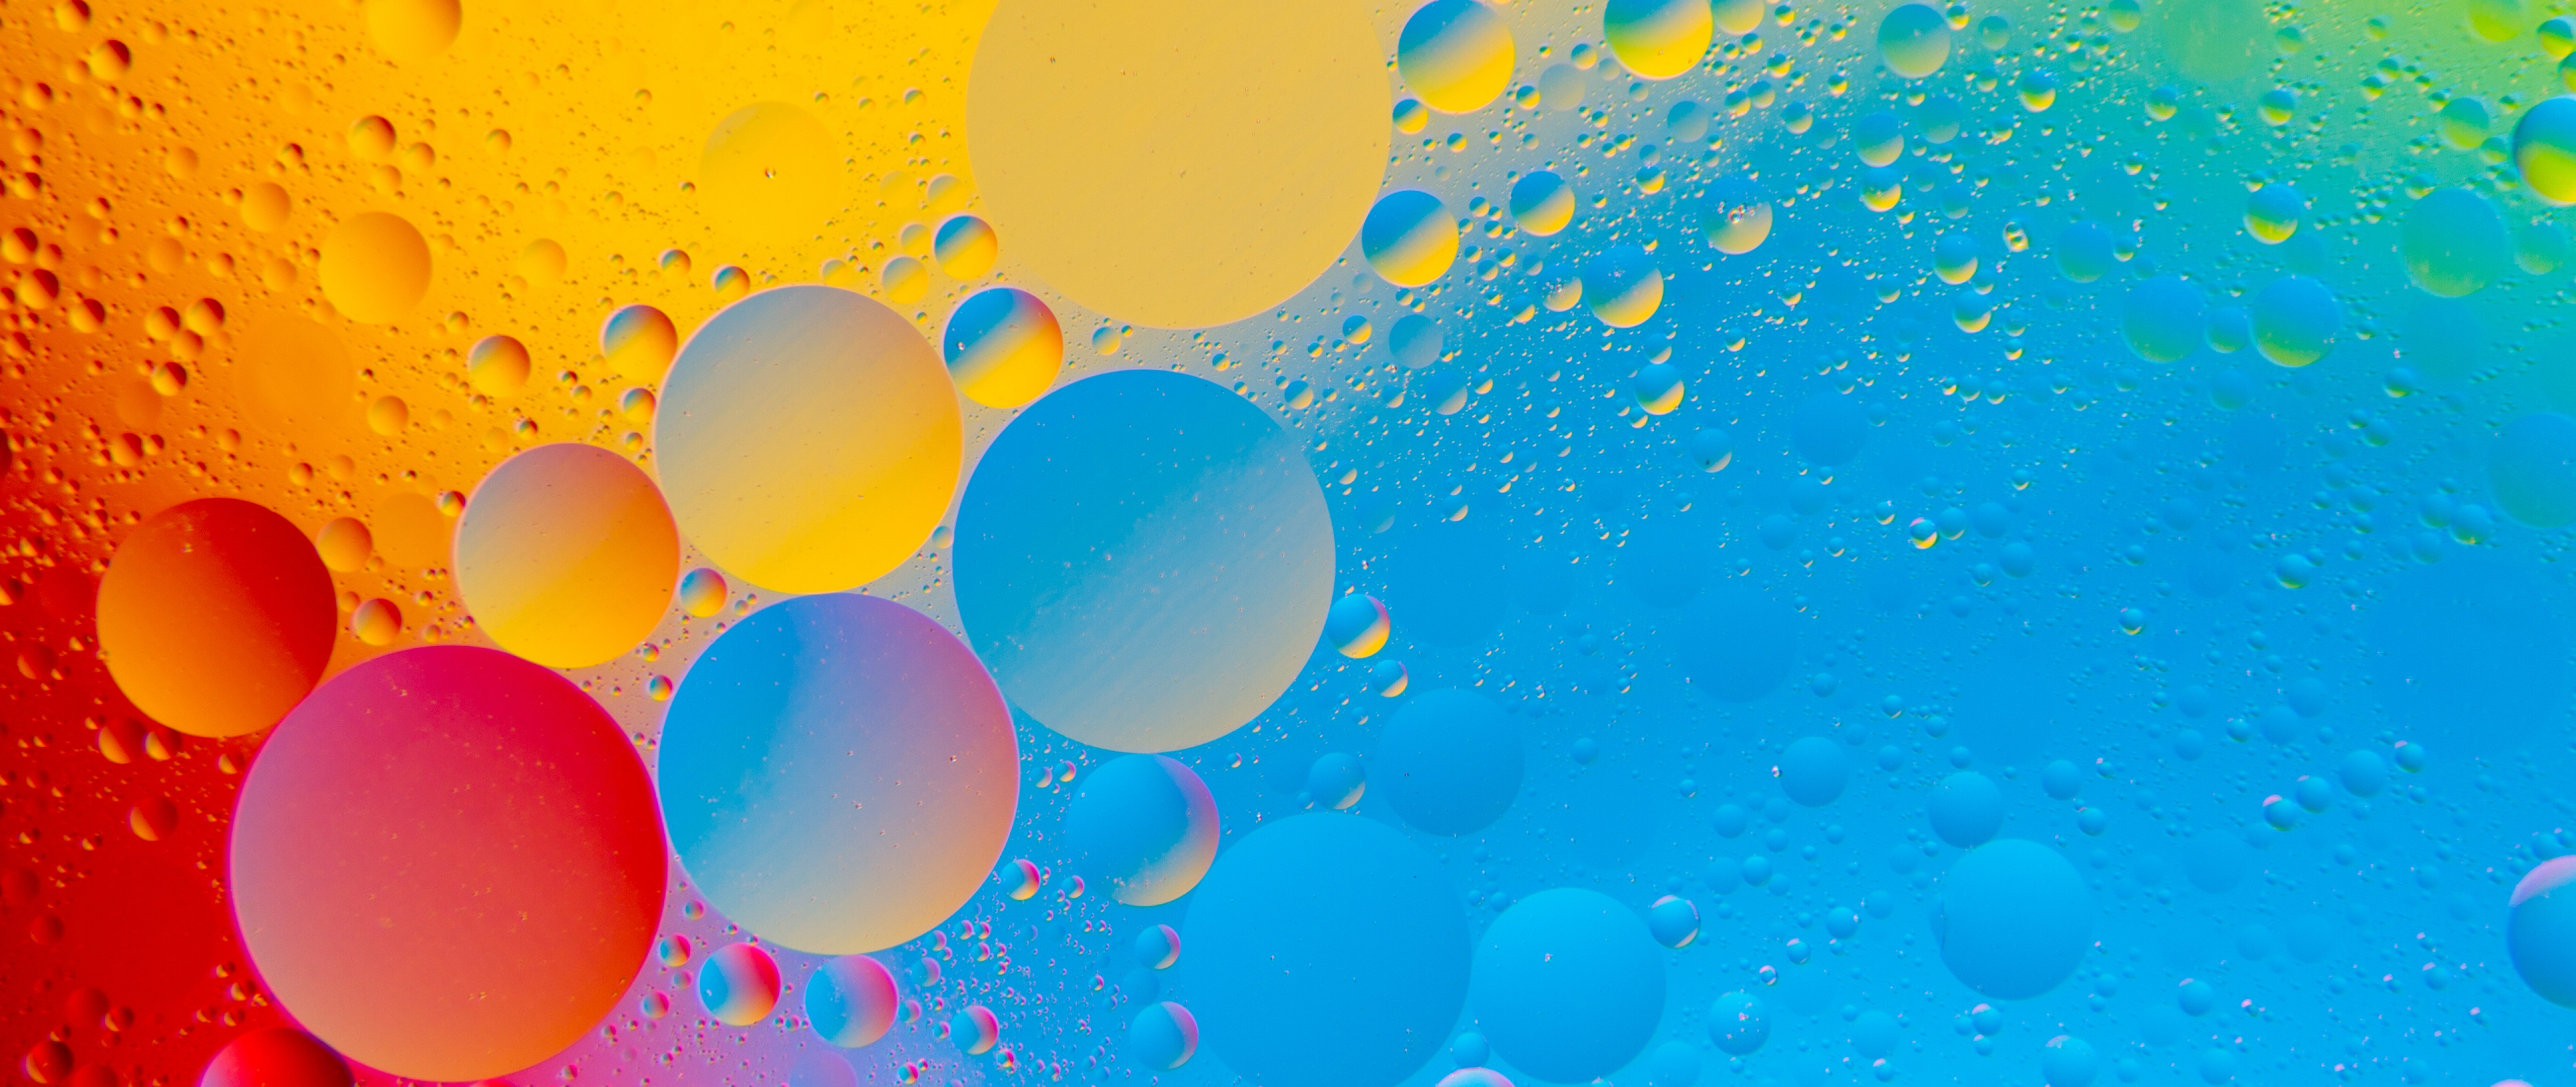 Music Background 4k Hd Desktop Wallpaper For 4k Ultra Hd: Colourful Bubbles 4K HD Abstract Wallpaper 4K Ultra HD